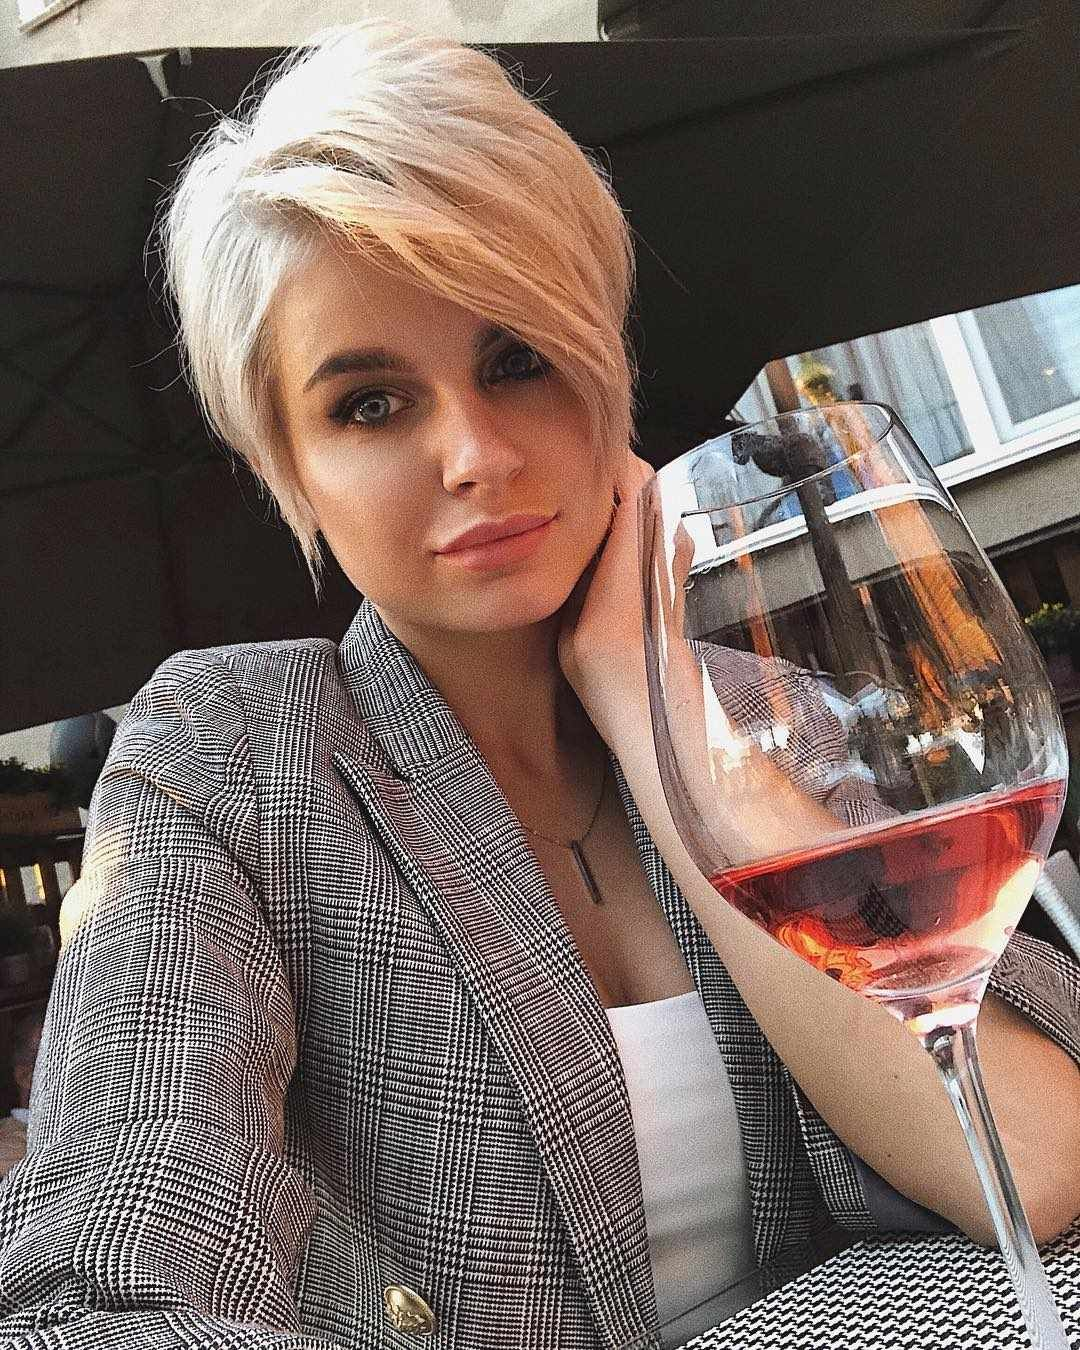 The Most Admired Pixie Haircut with Short Hairstyle #pixiehairstyles